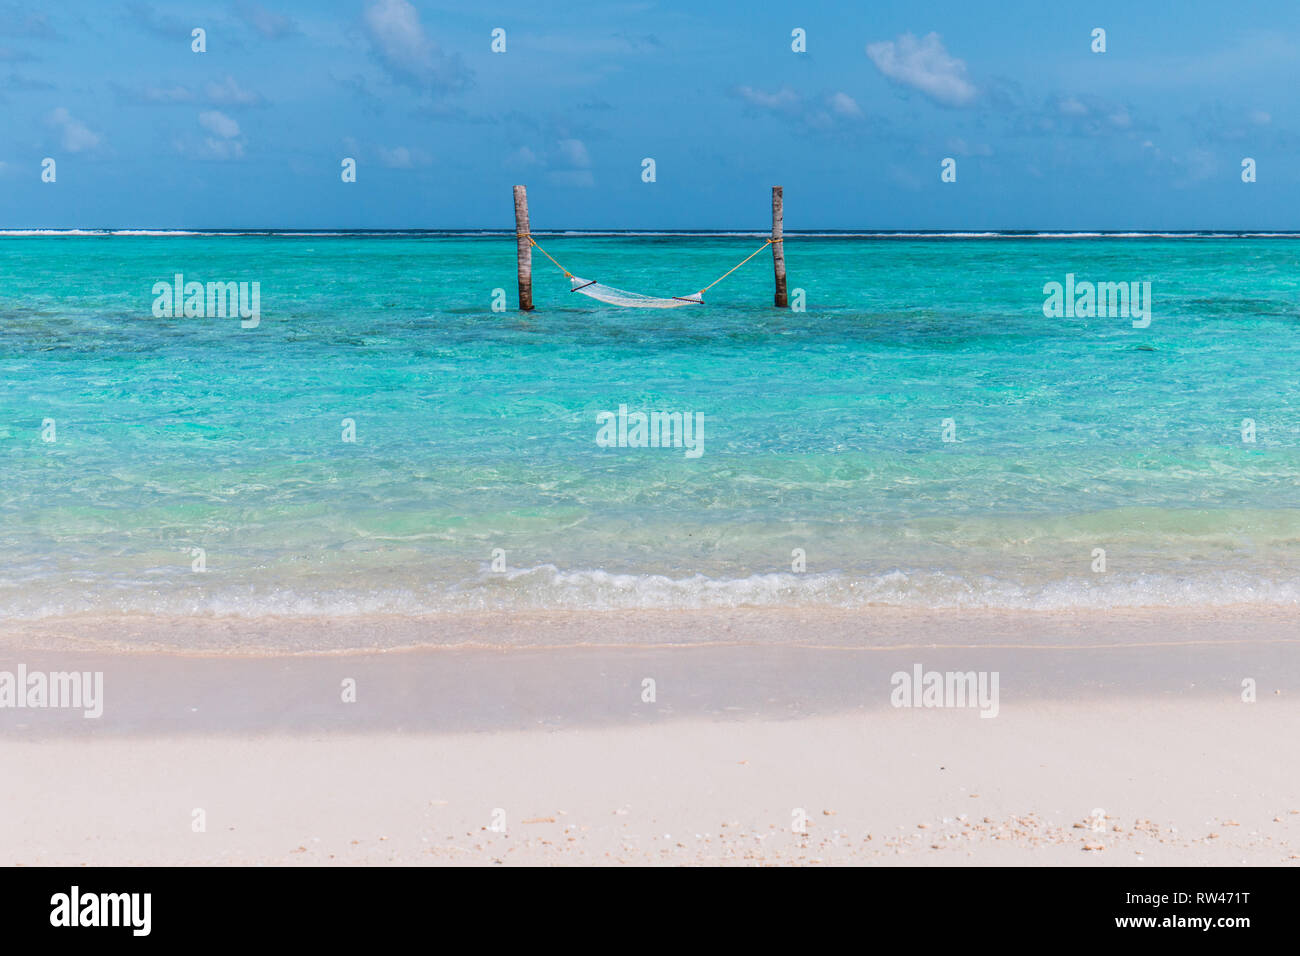 Hammock in the water on the maldives - Stock Image